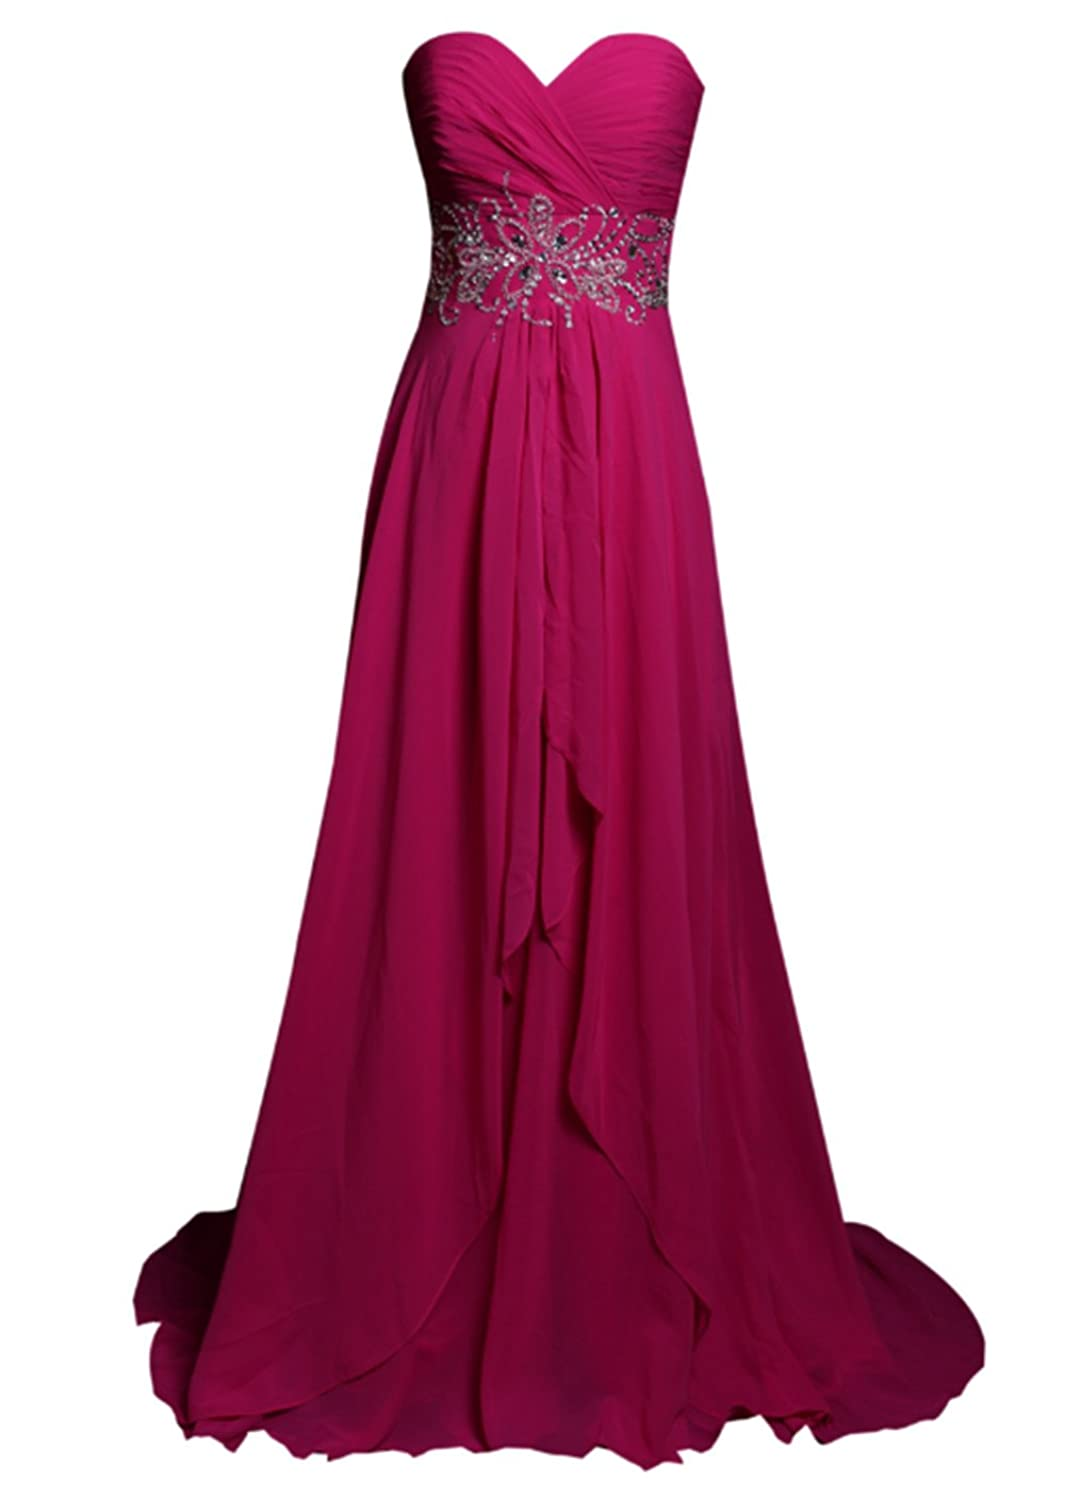 AngelDragon Off Shoulder Sweetheart Chiffon Long Prom Dresses Bridesmaid Gowns